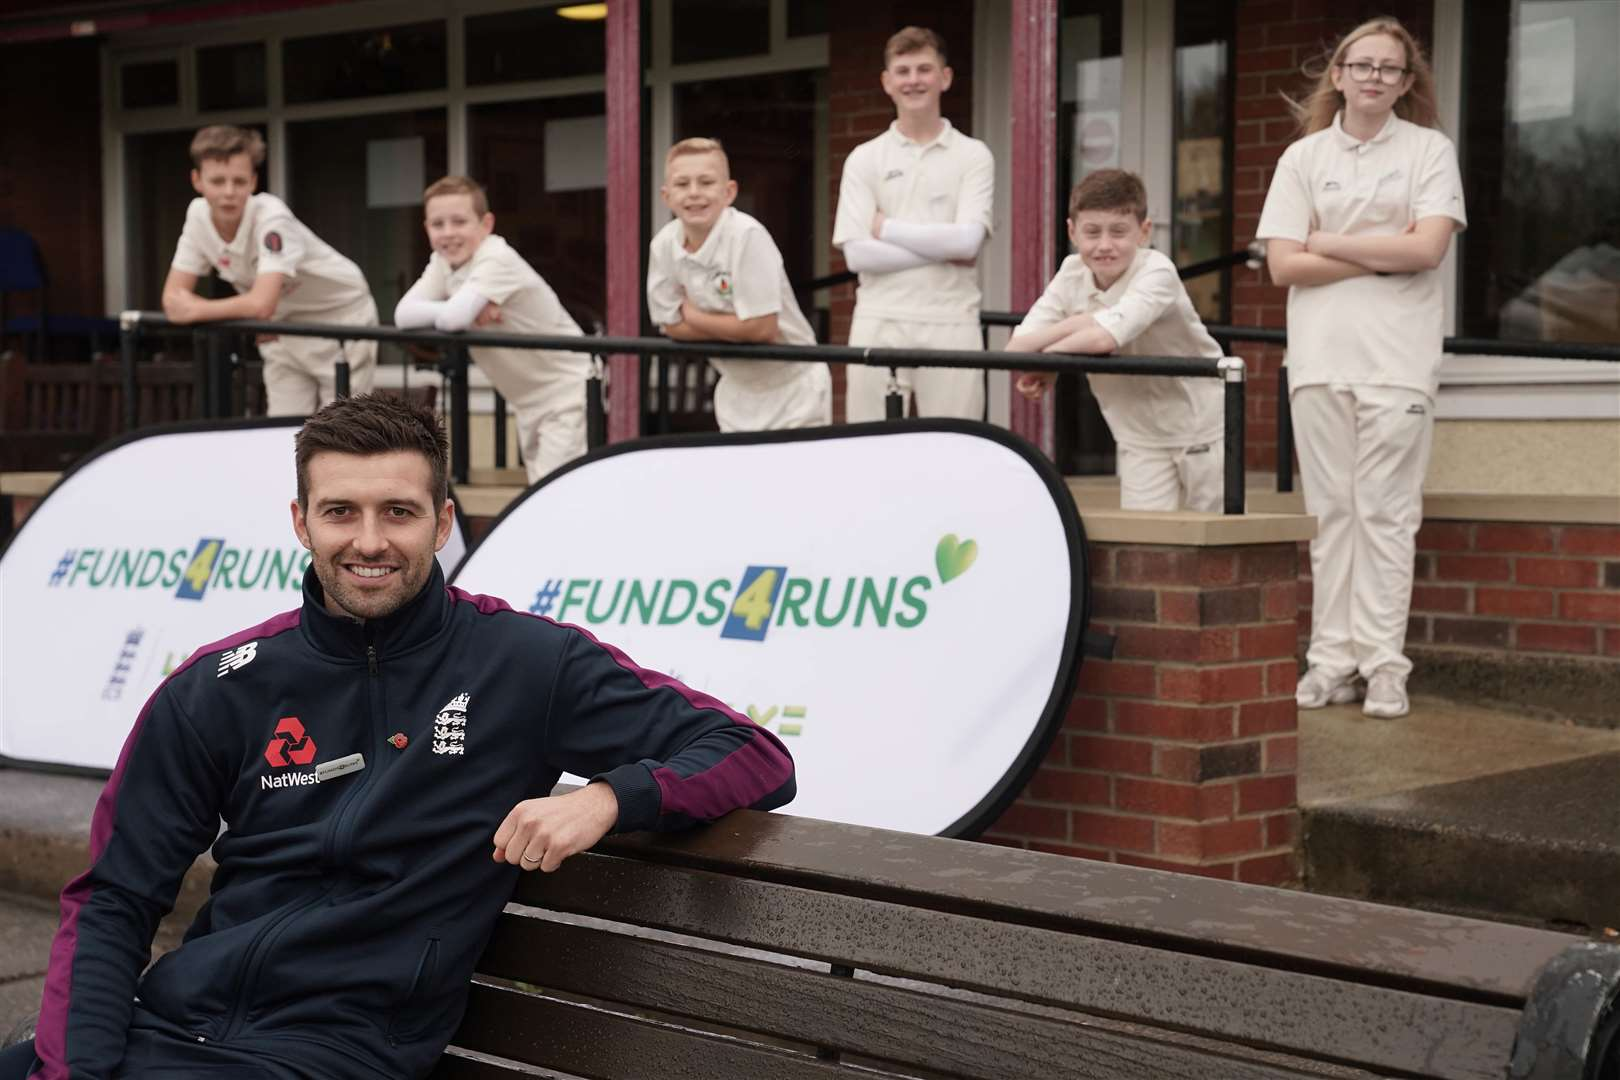 ENGLAND'S Mark Wood meets young cricketers at his home club, Ashington CC, ahead of the launch of #Funds4Runs, which is a £1m investment jointly funded by England and Wales Cricket Board.